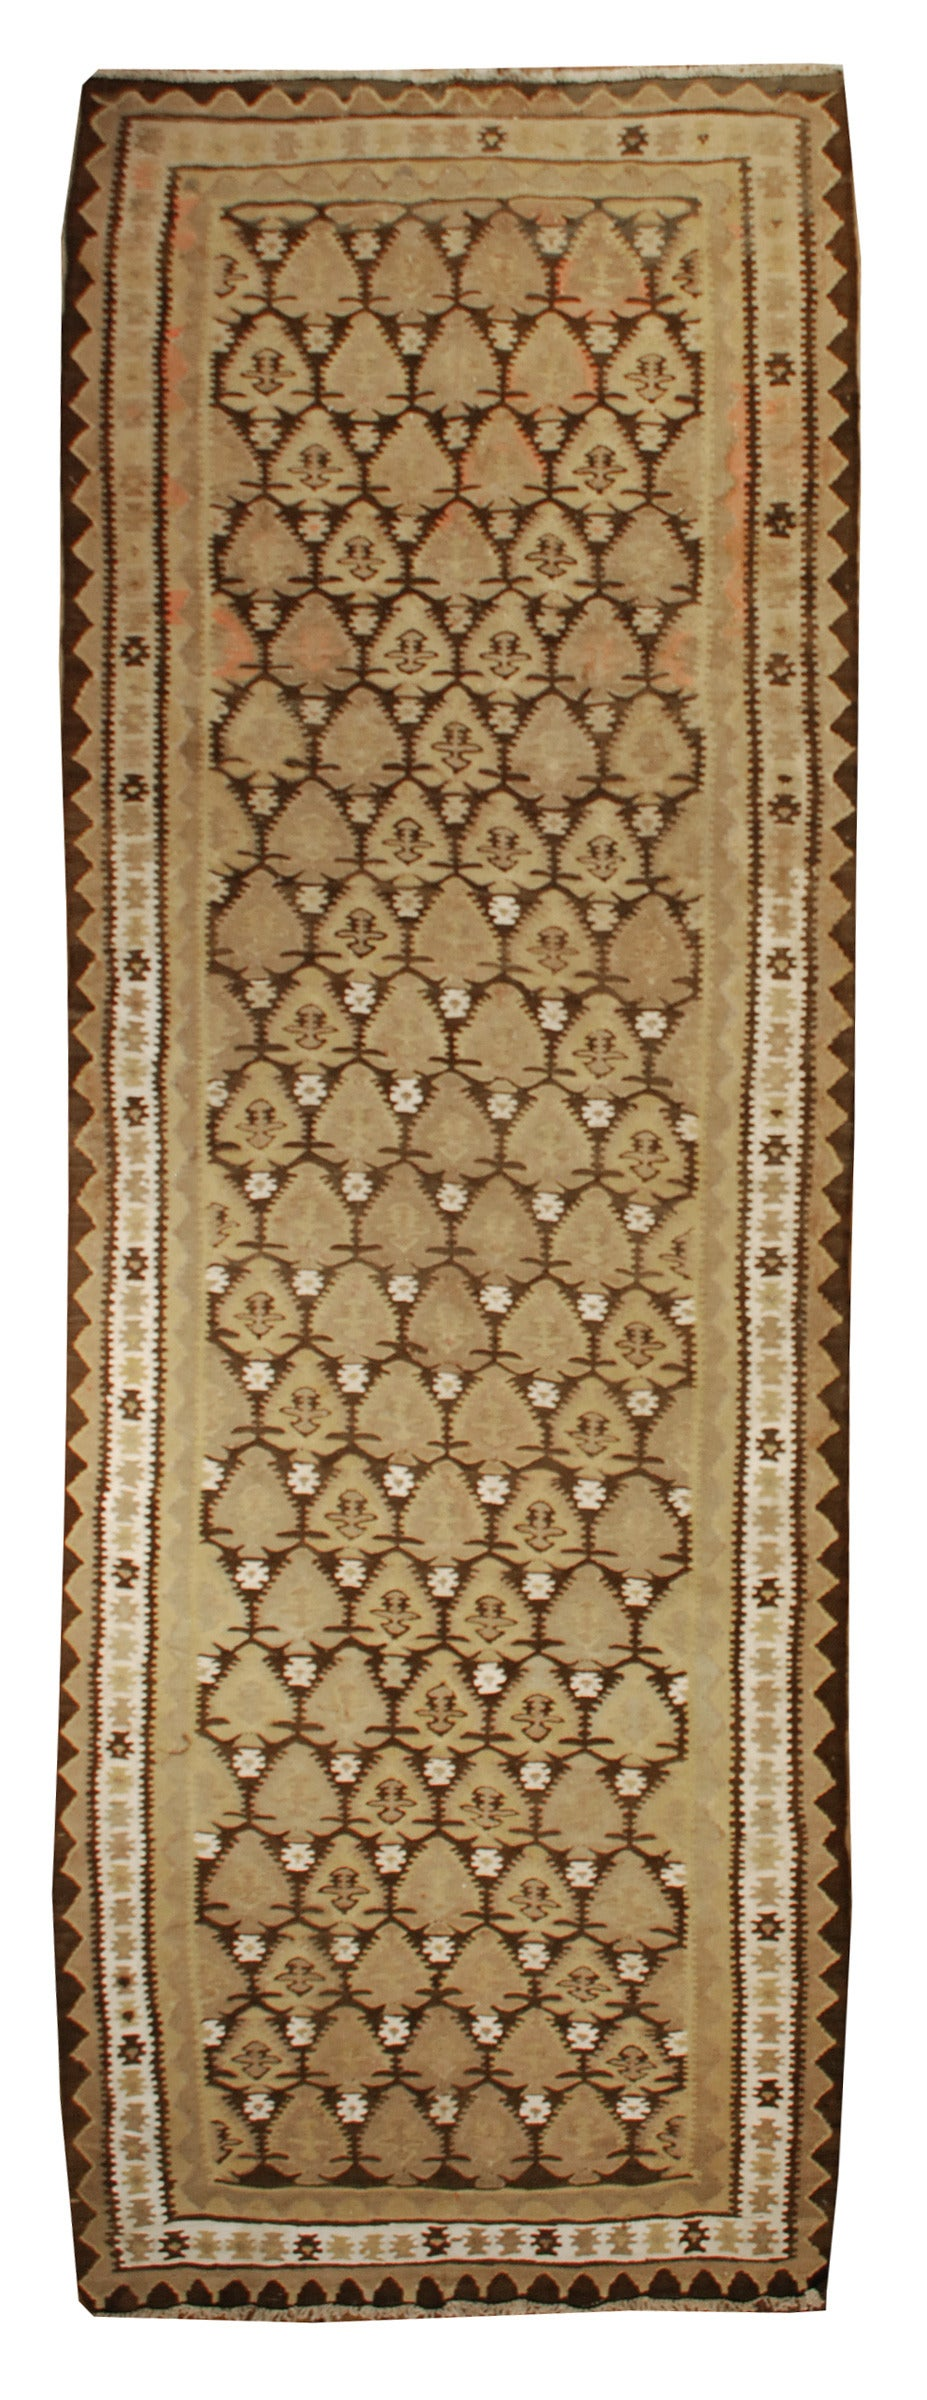 early 20th century qazvin kilim runner rug for sale at 1stdibs